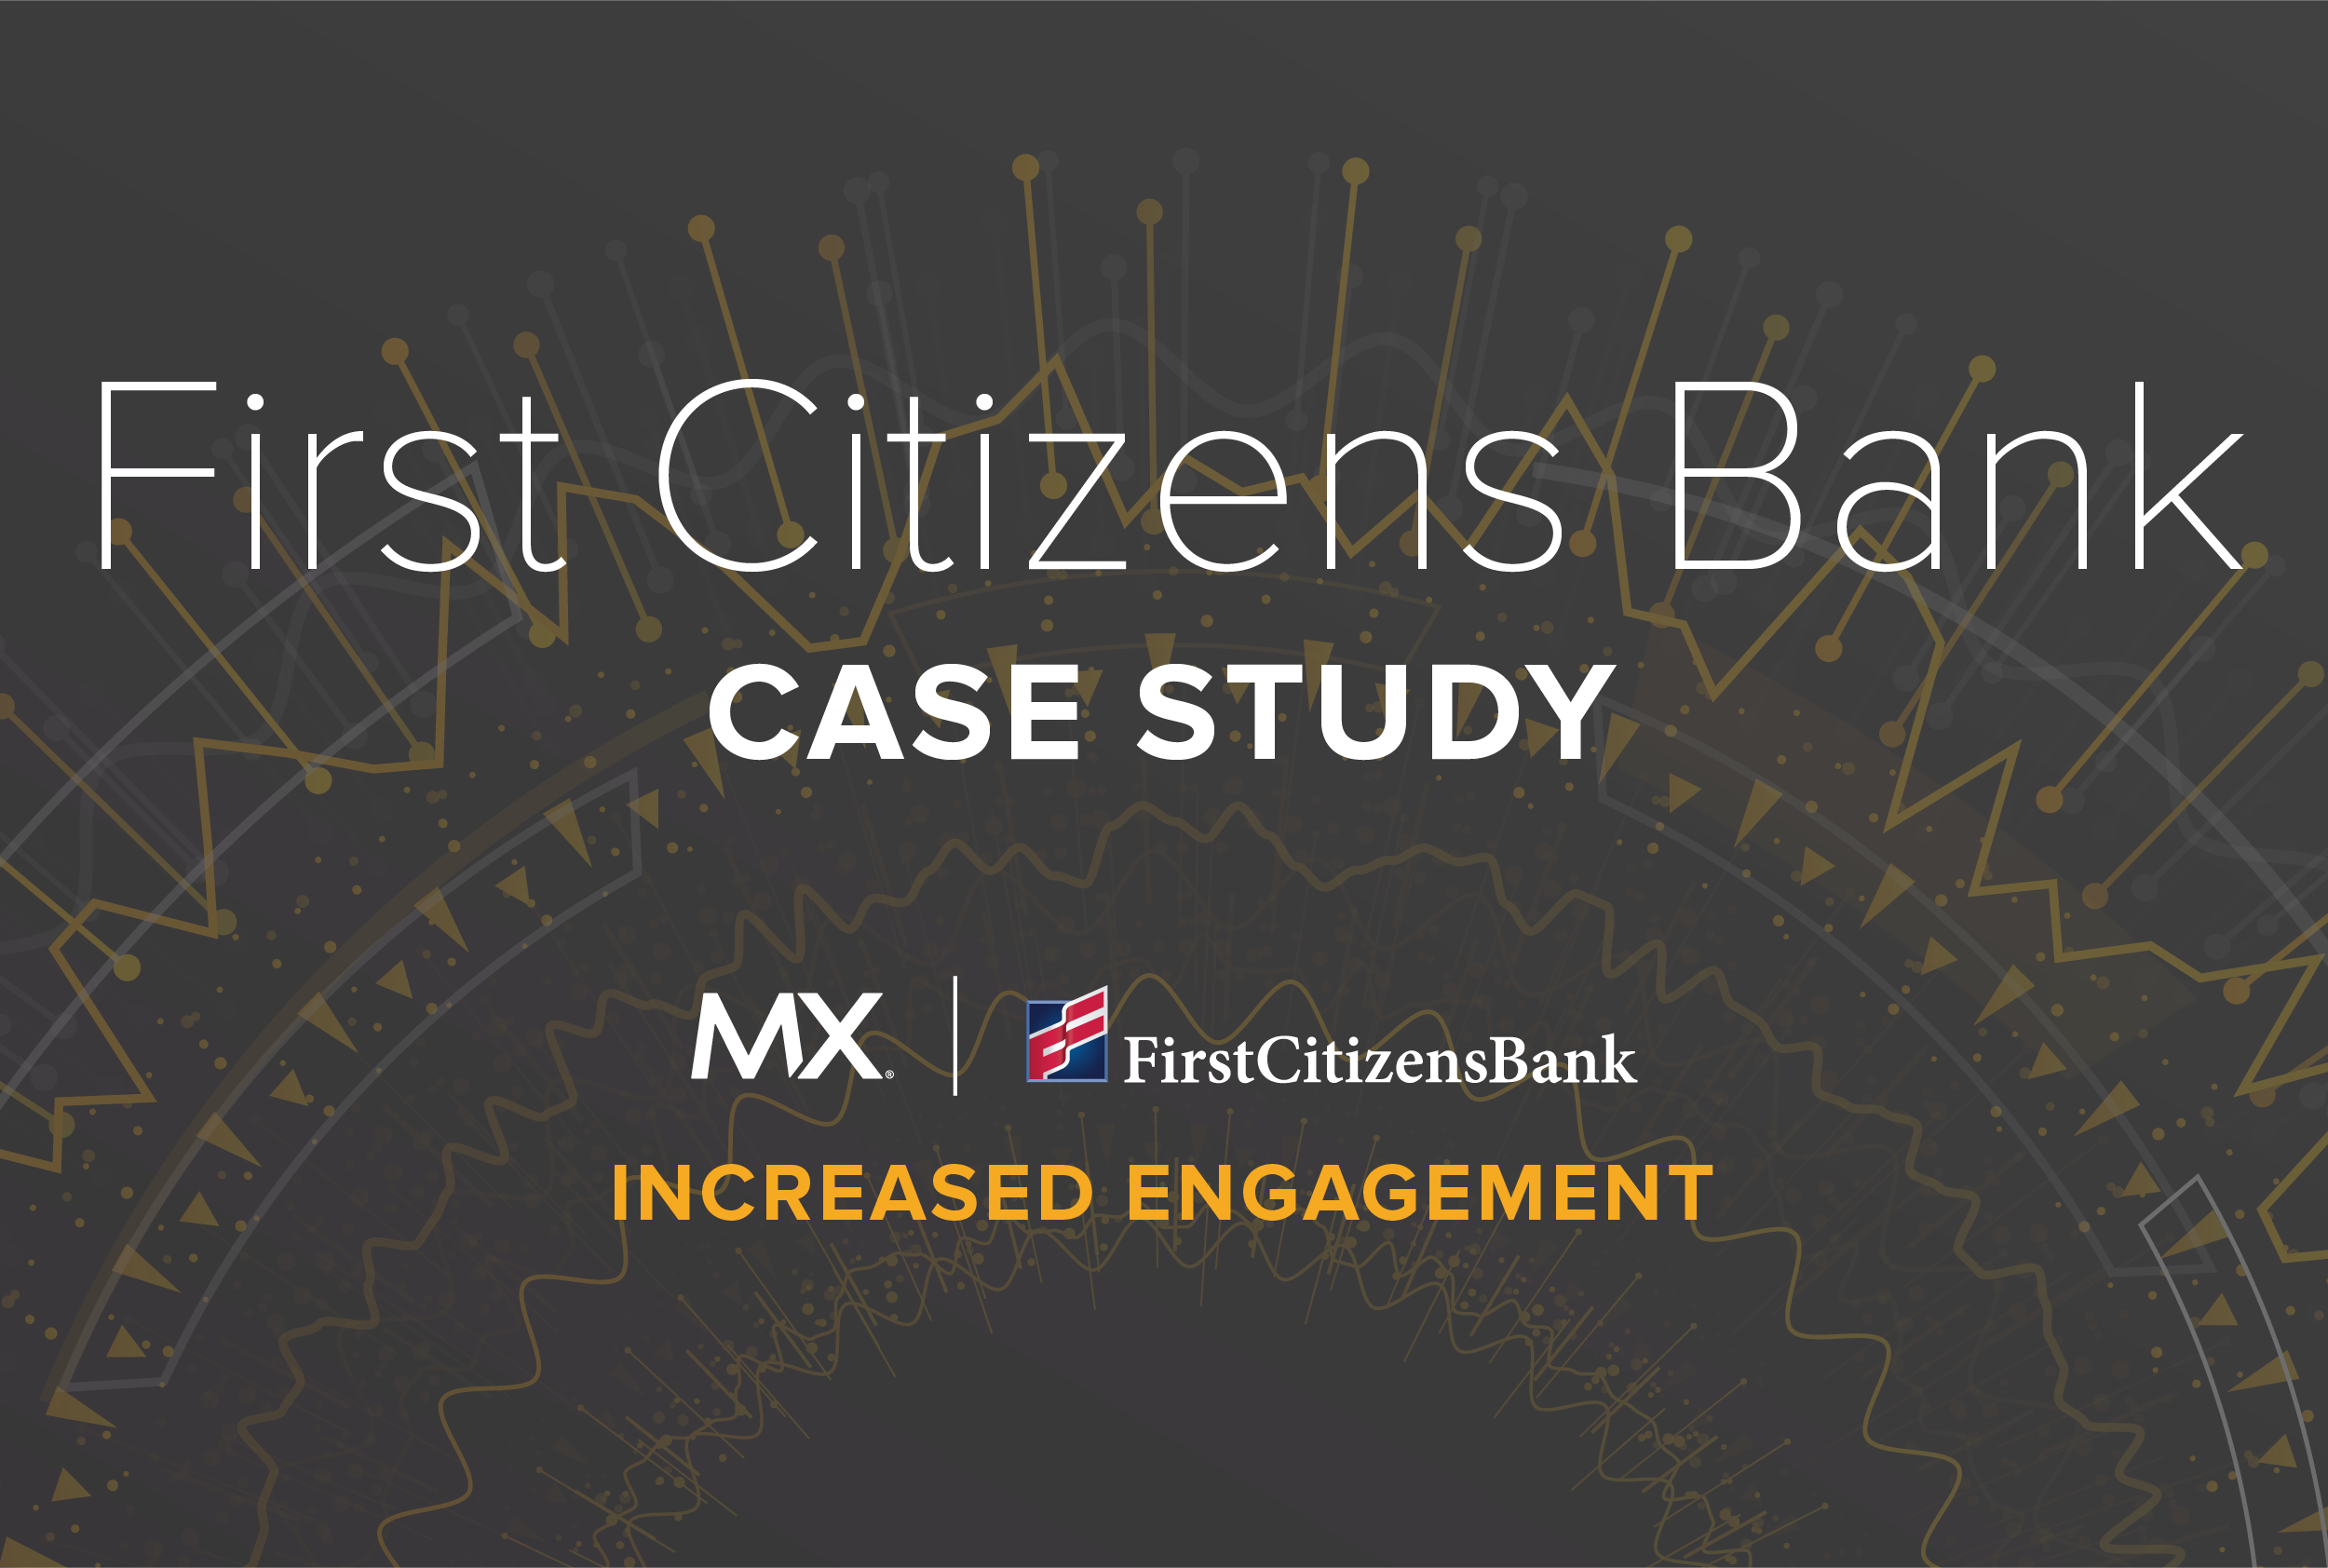 Case Study: First Citizens Bank